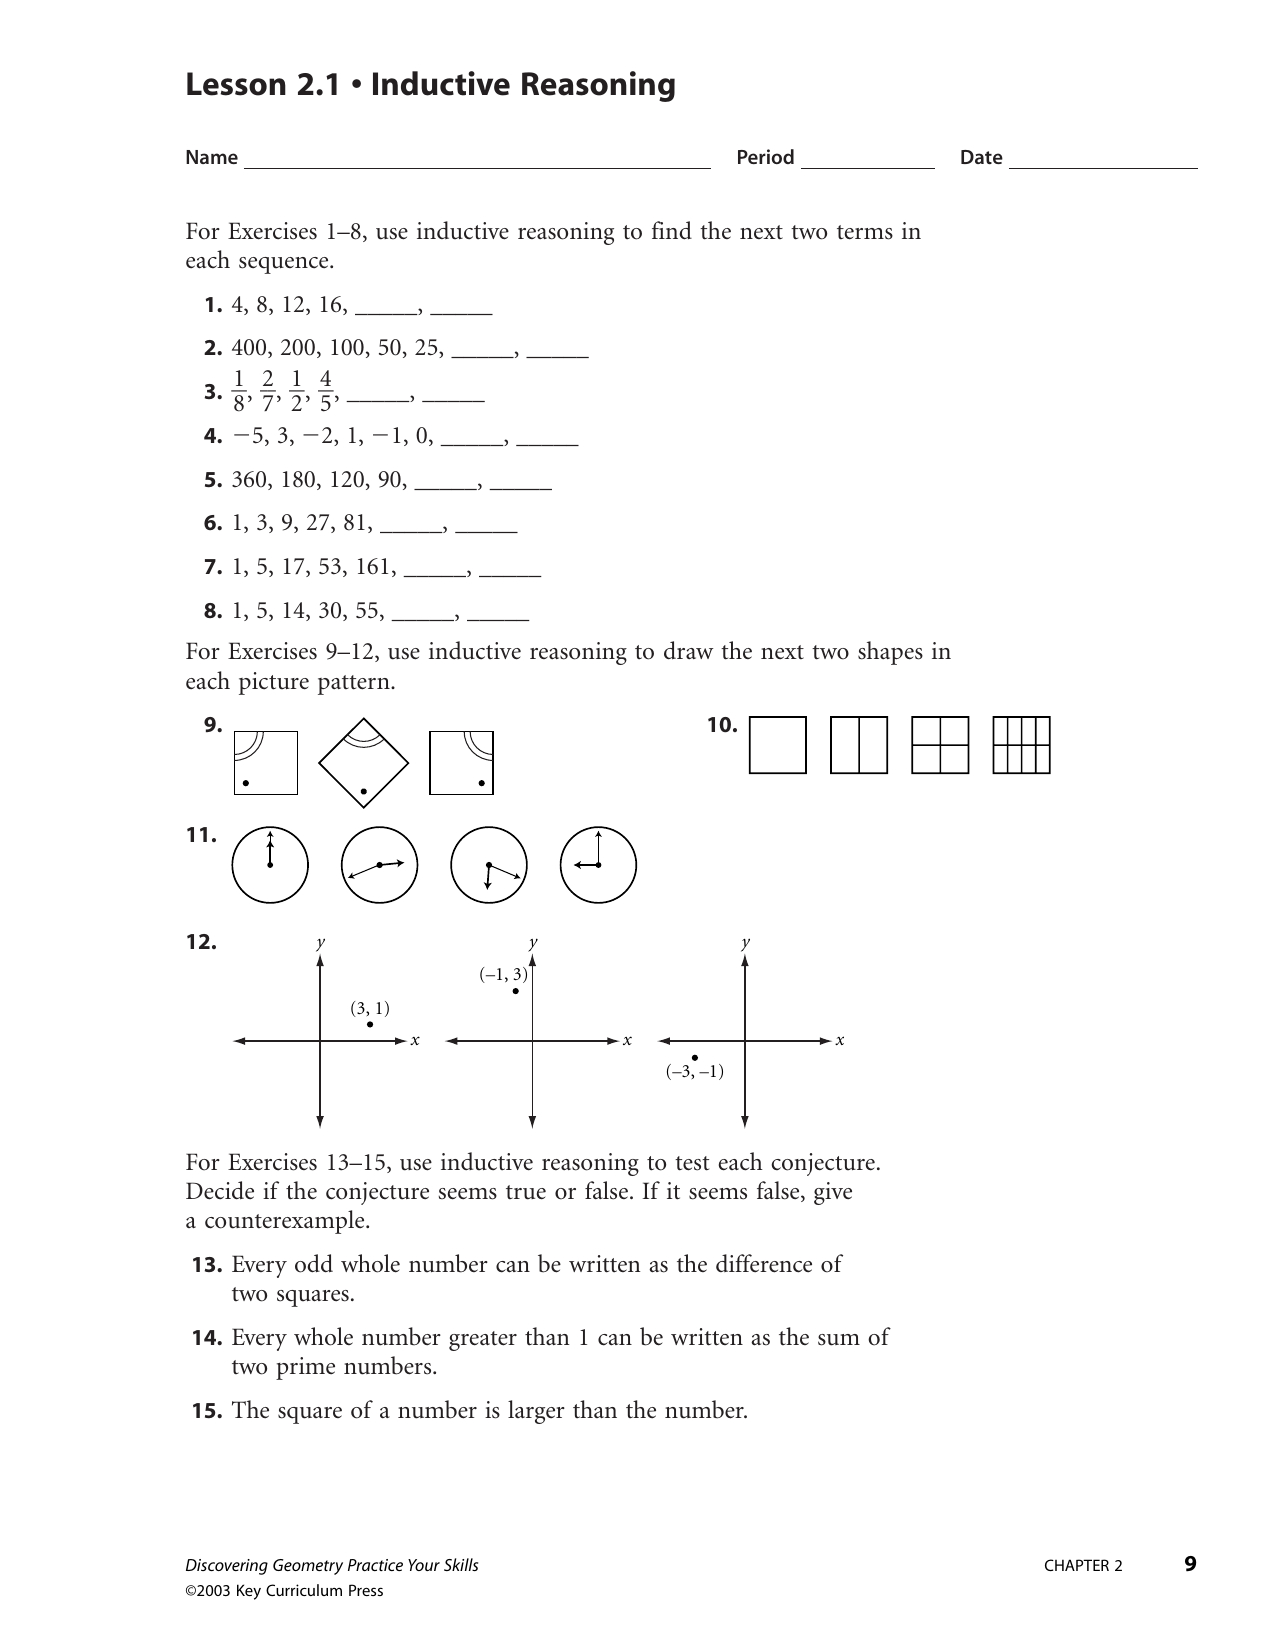 Patterns And Inductive Reasoning Worksheet And Answers